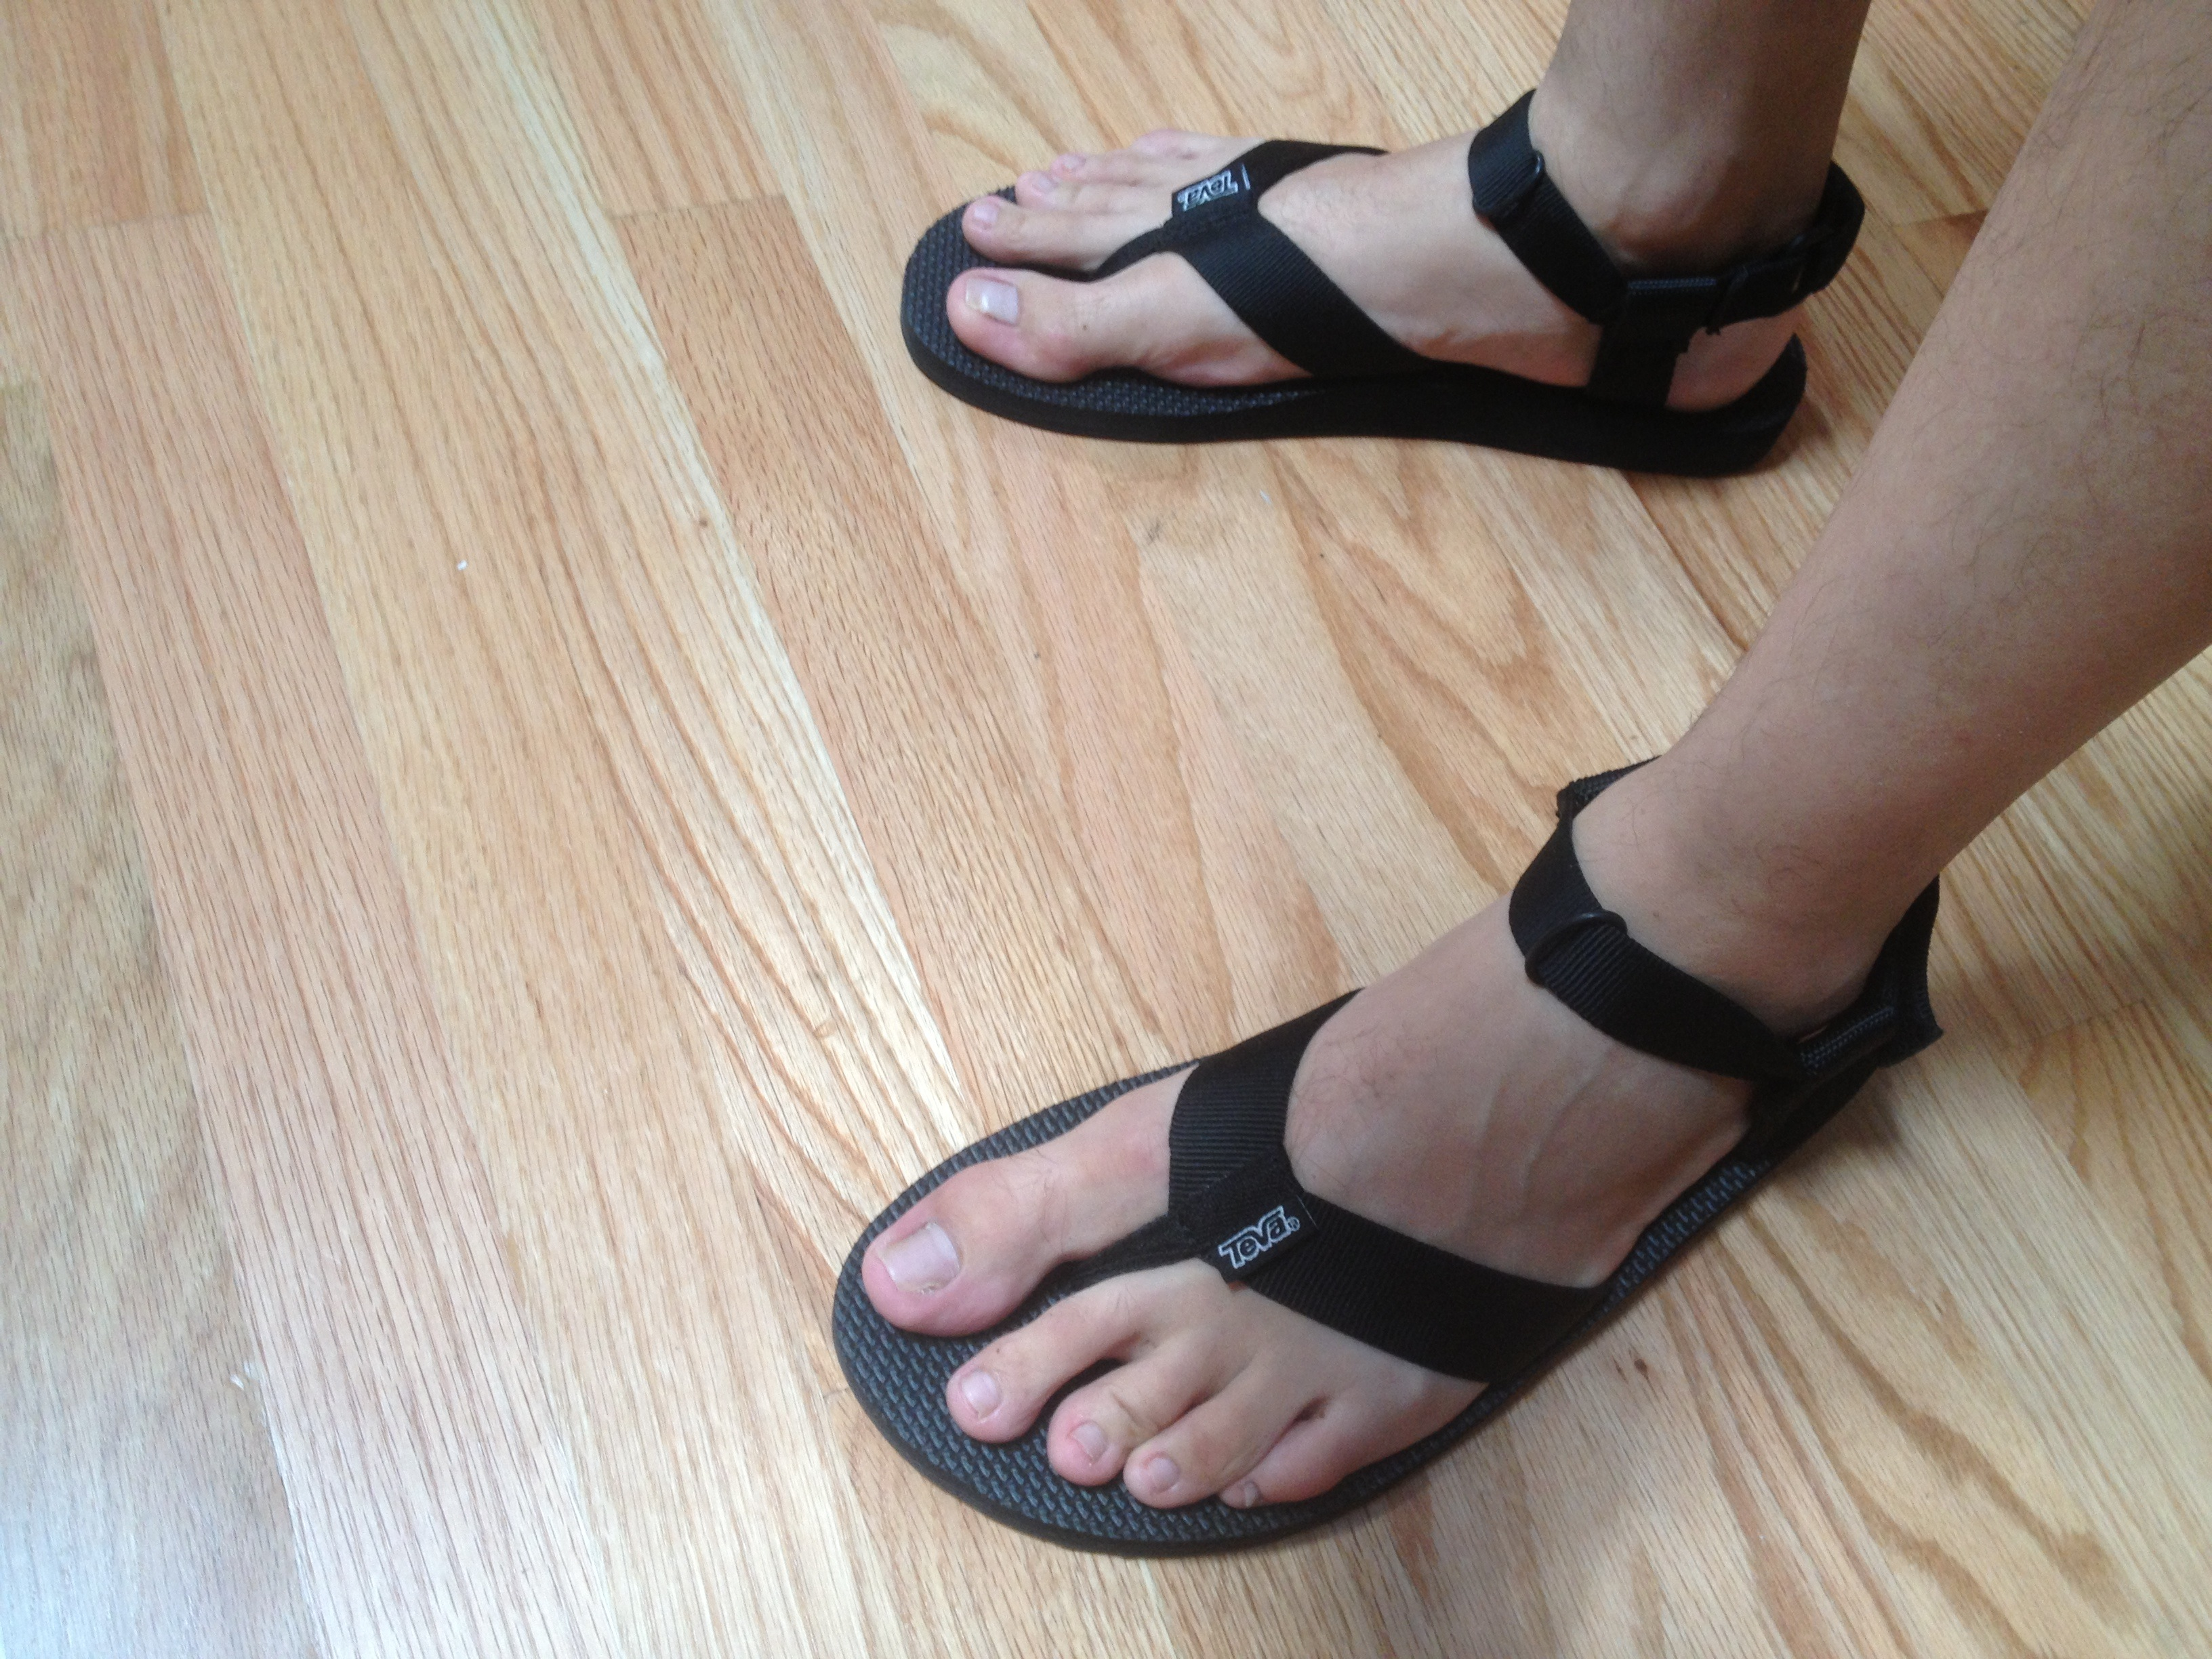 678741ce4f7a TBT  Teva and the Great Outdoors - DKC